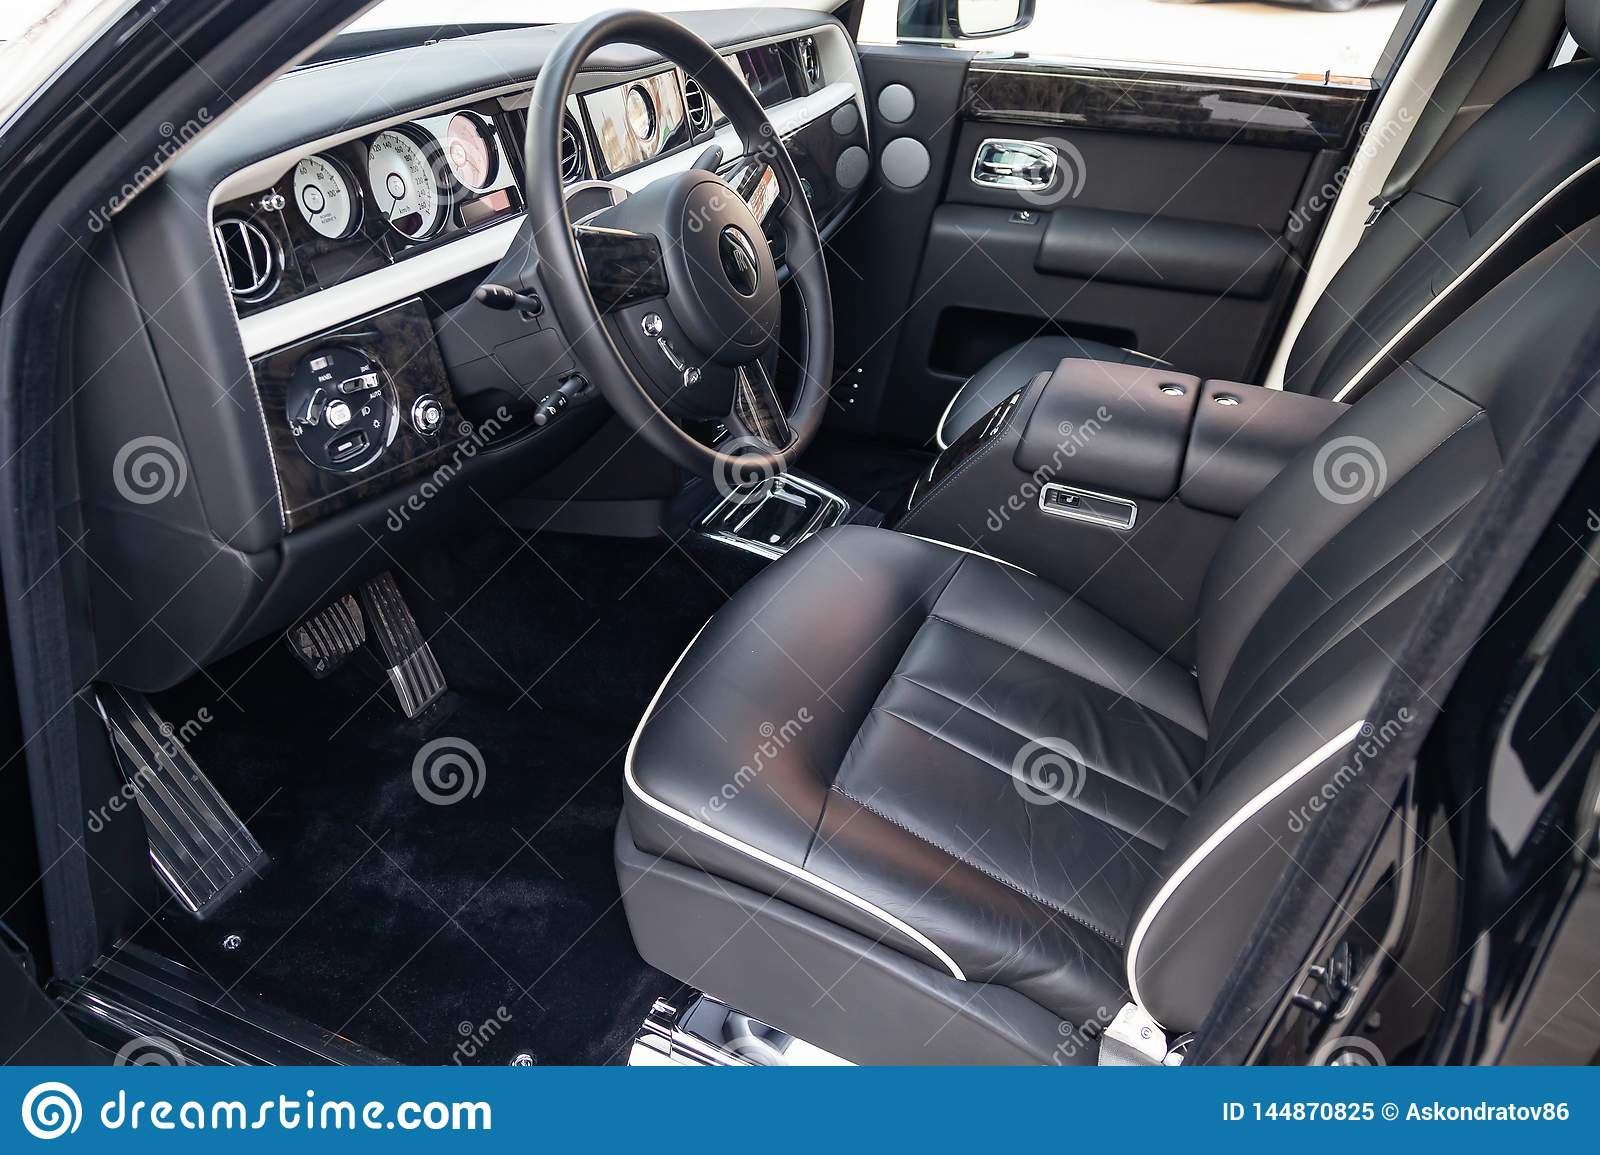 Interior View Of New A Very Expensive Rolls Royce Phantom Car A Long Black Limousine With Dashboard Steering Wheel Seats On Editorial Image Image Of Lifestyle Comfort 144870825